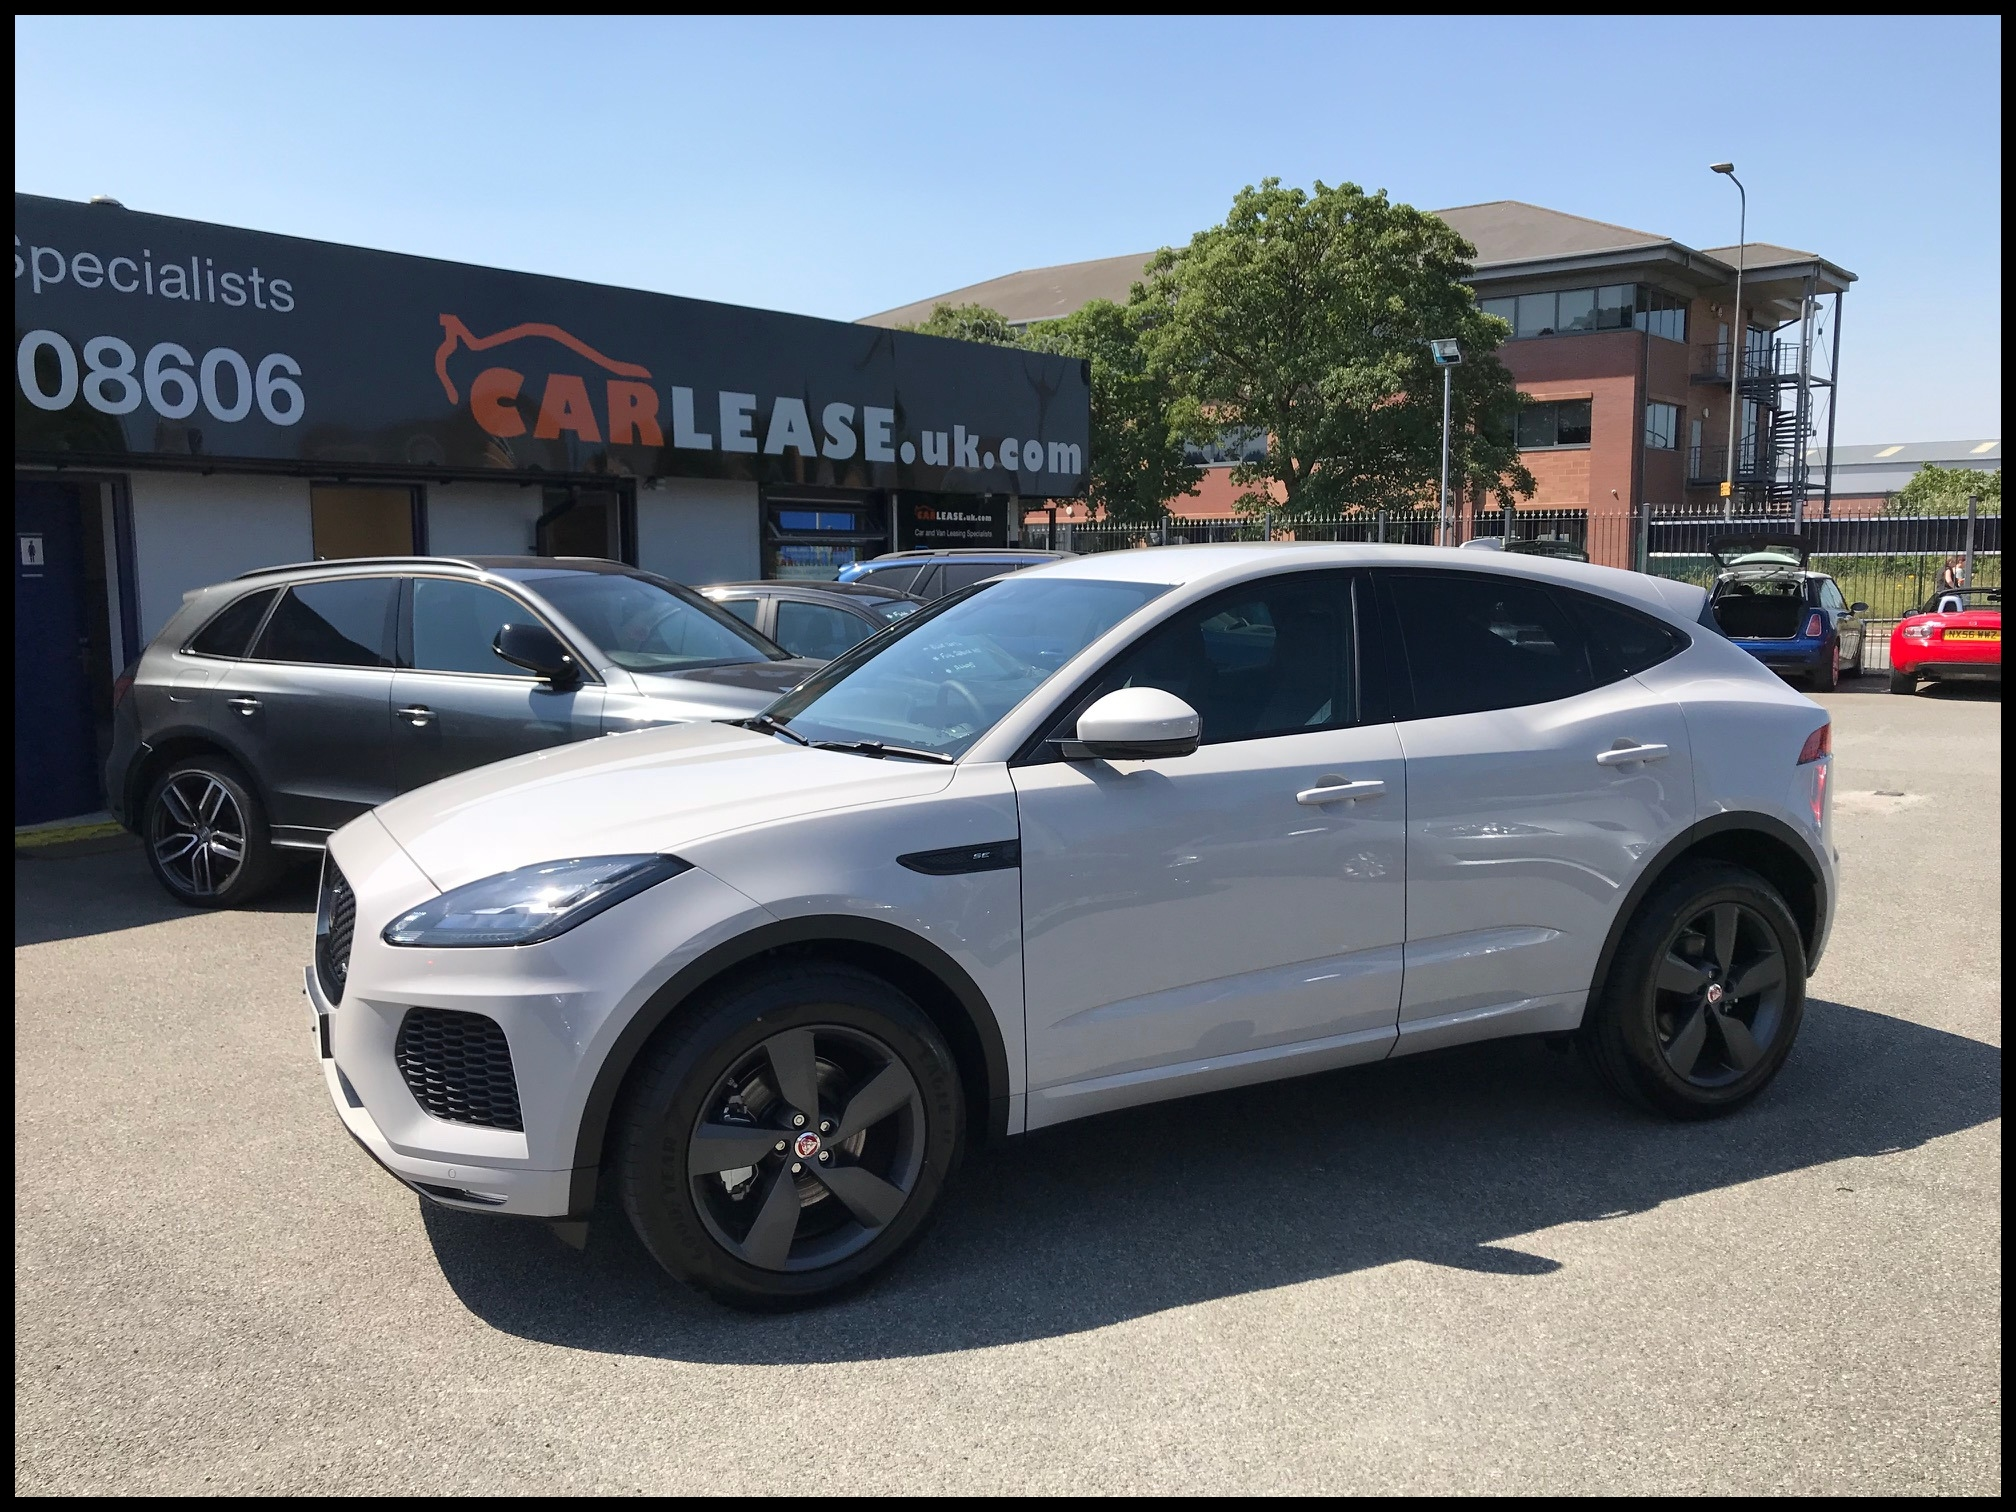 Electric Car Mileage Range parison Beautiful In Review Jaguar E Pace 2 0d [180]